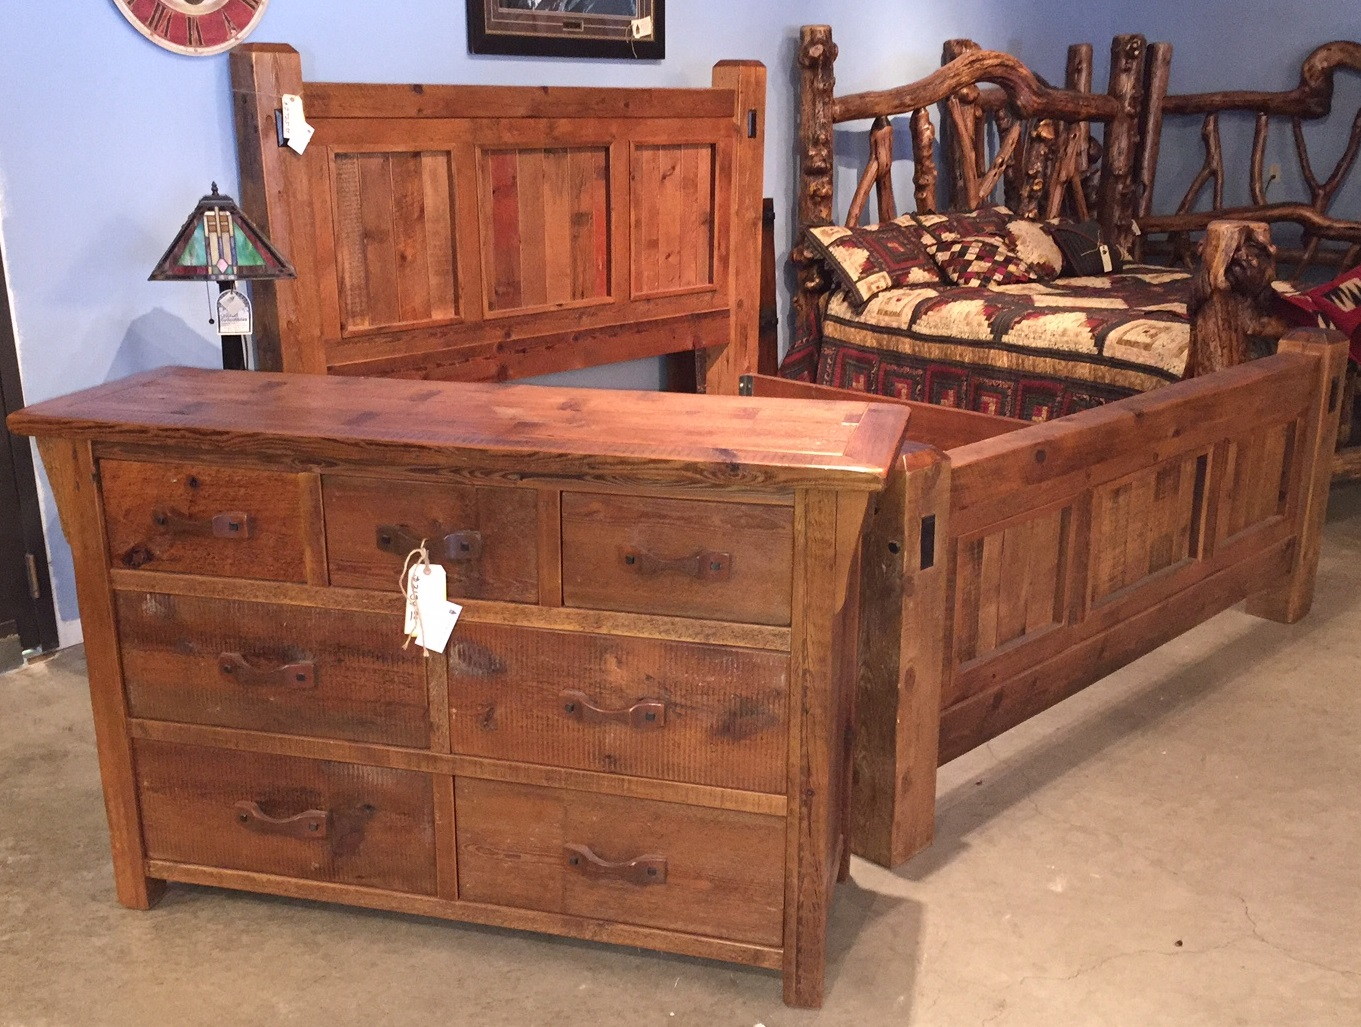 Amazing Craigslist Lakeland Furniture